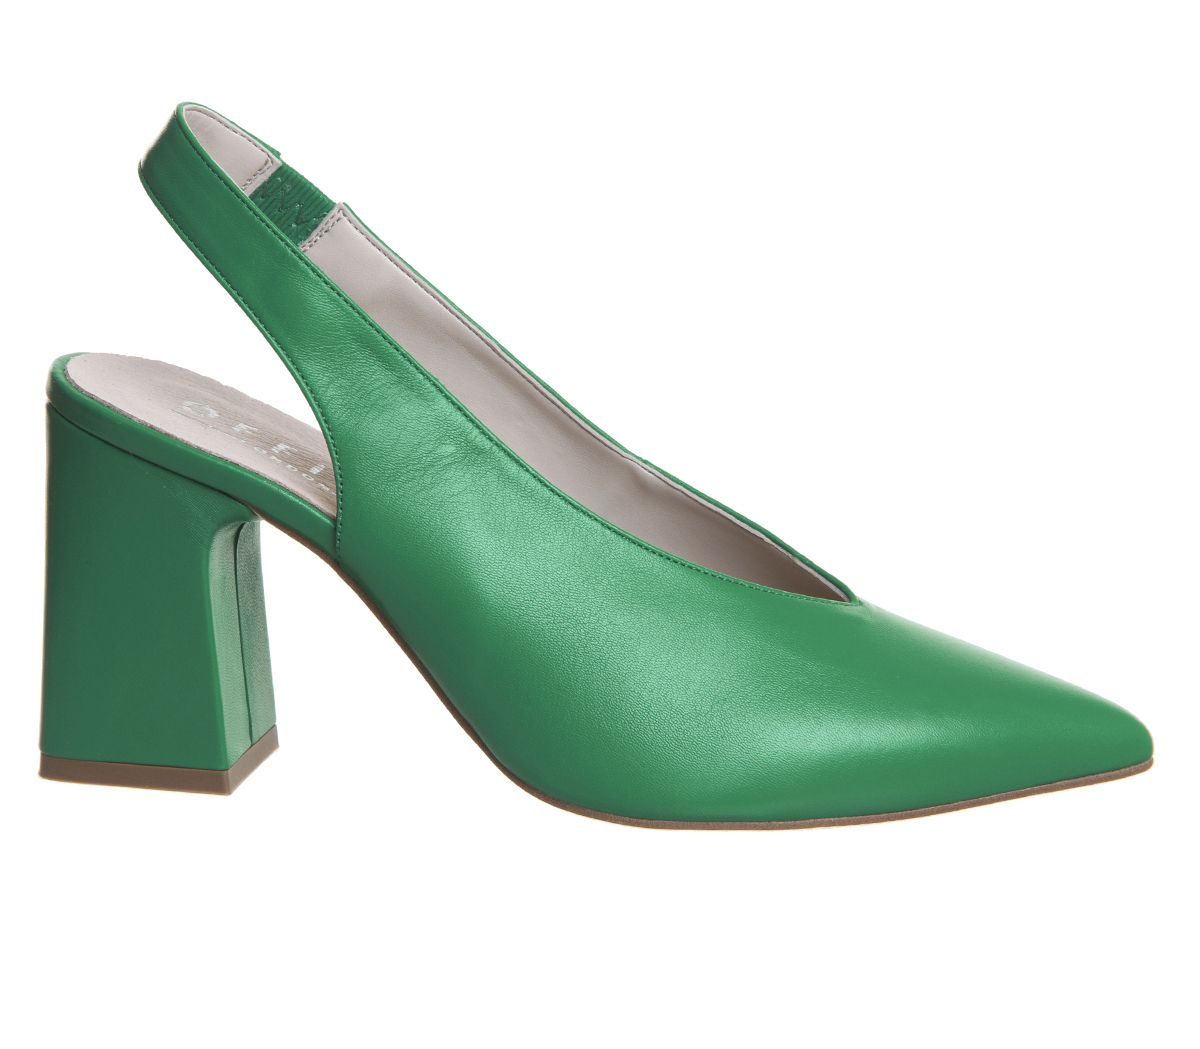 3c3a7c214c Office Mimi Chunky Slingback Heels Jade Green Leather - Mid Heels